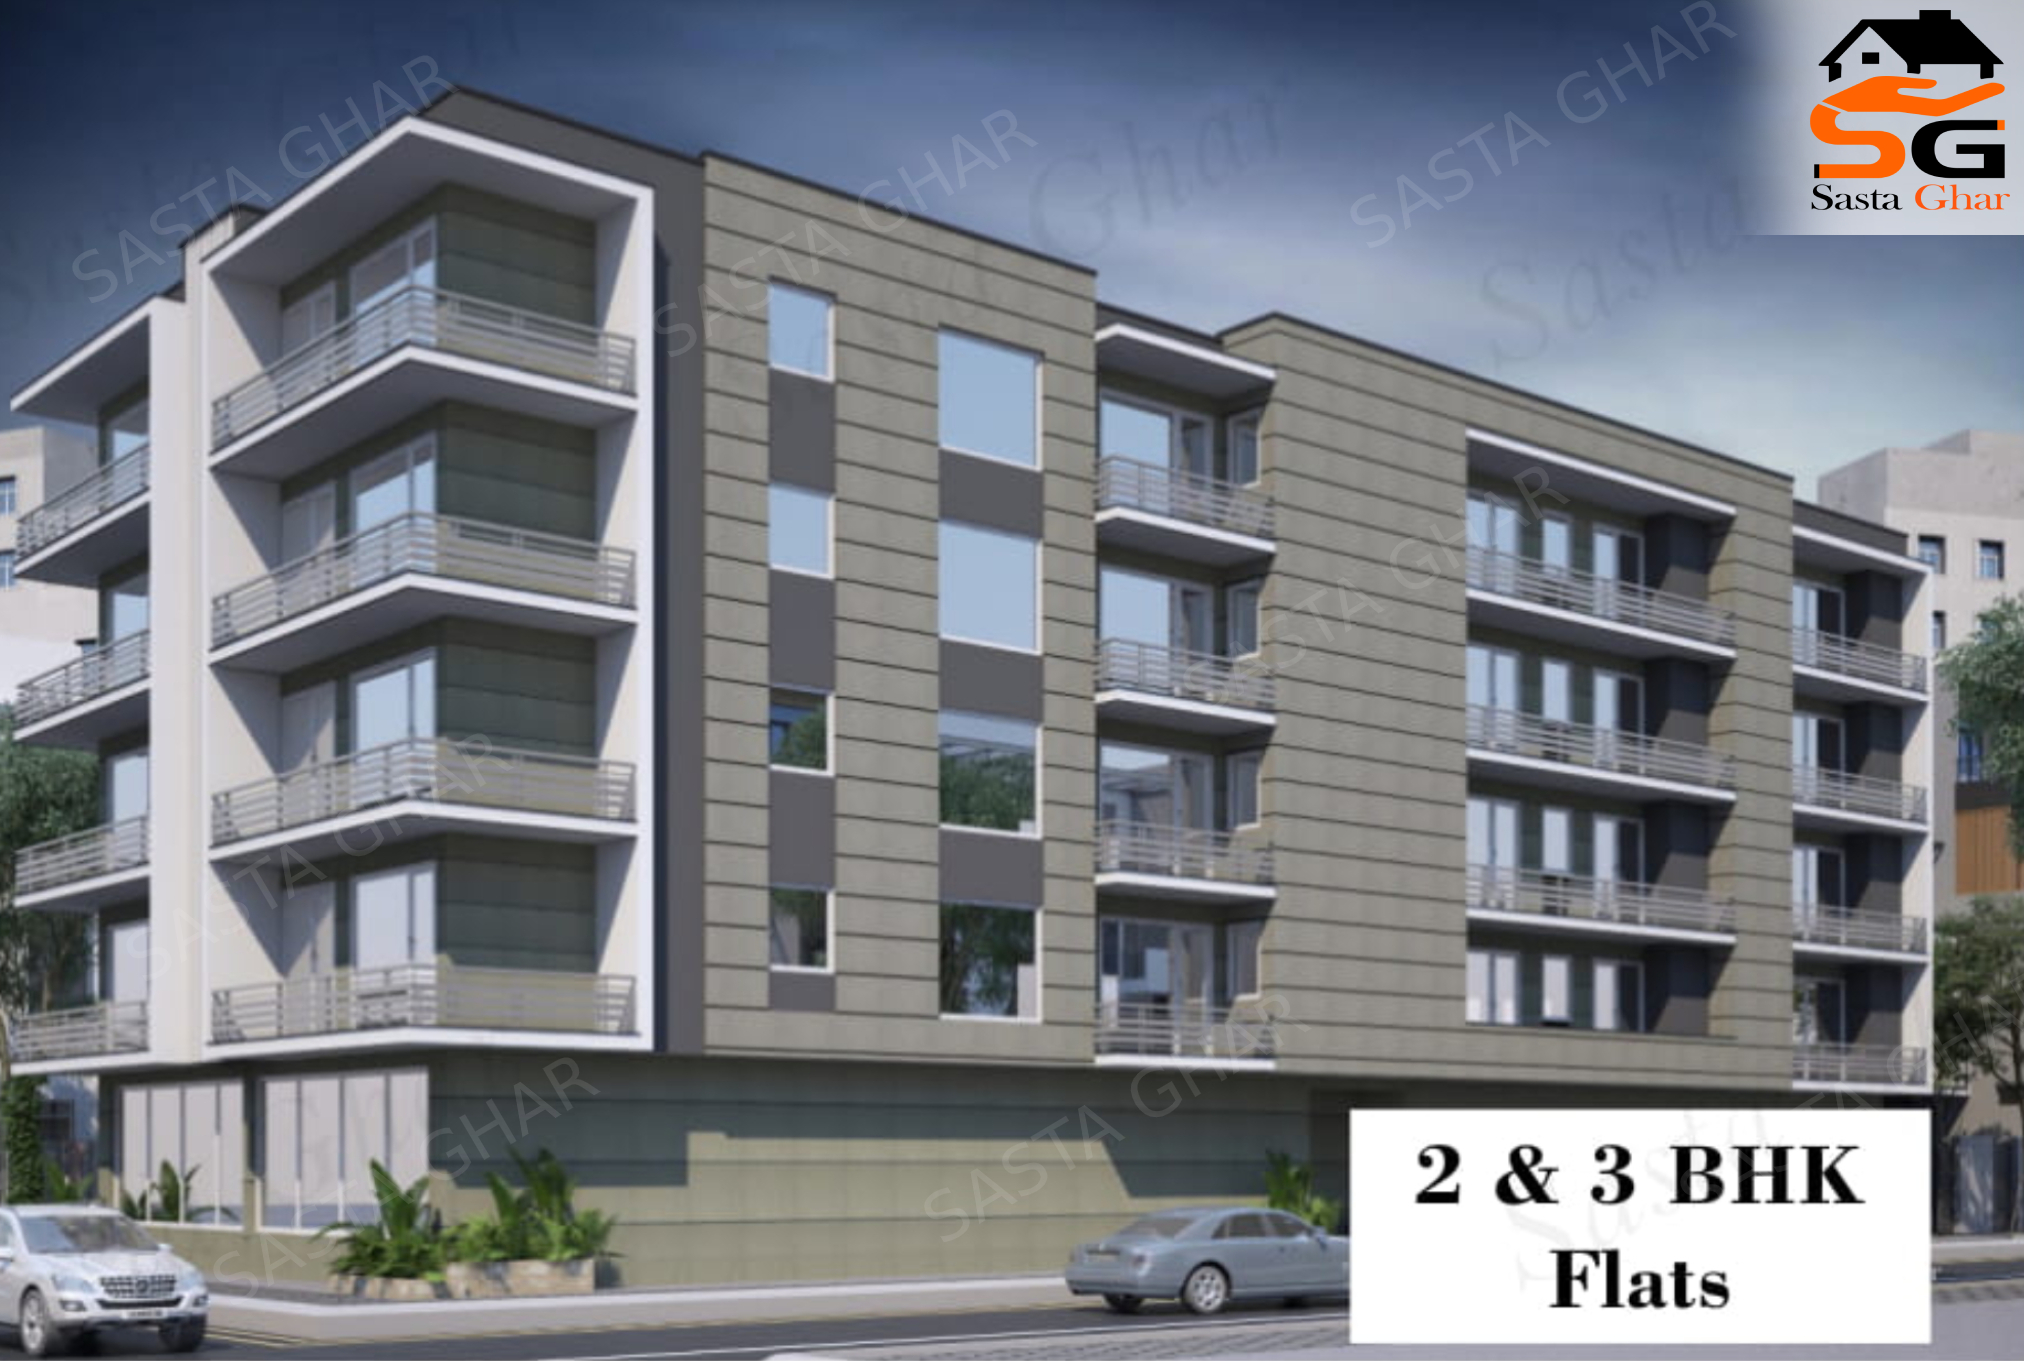 2 & 3 BHK Flats In Chattarpur Image